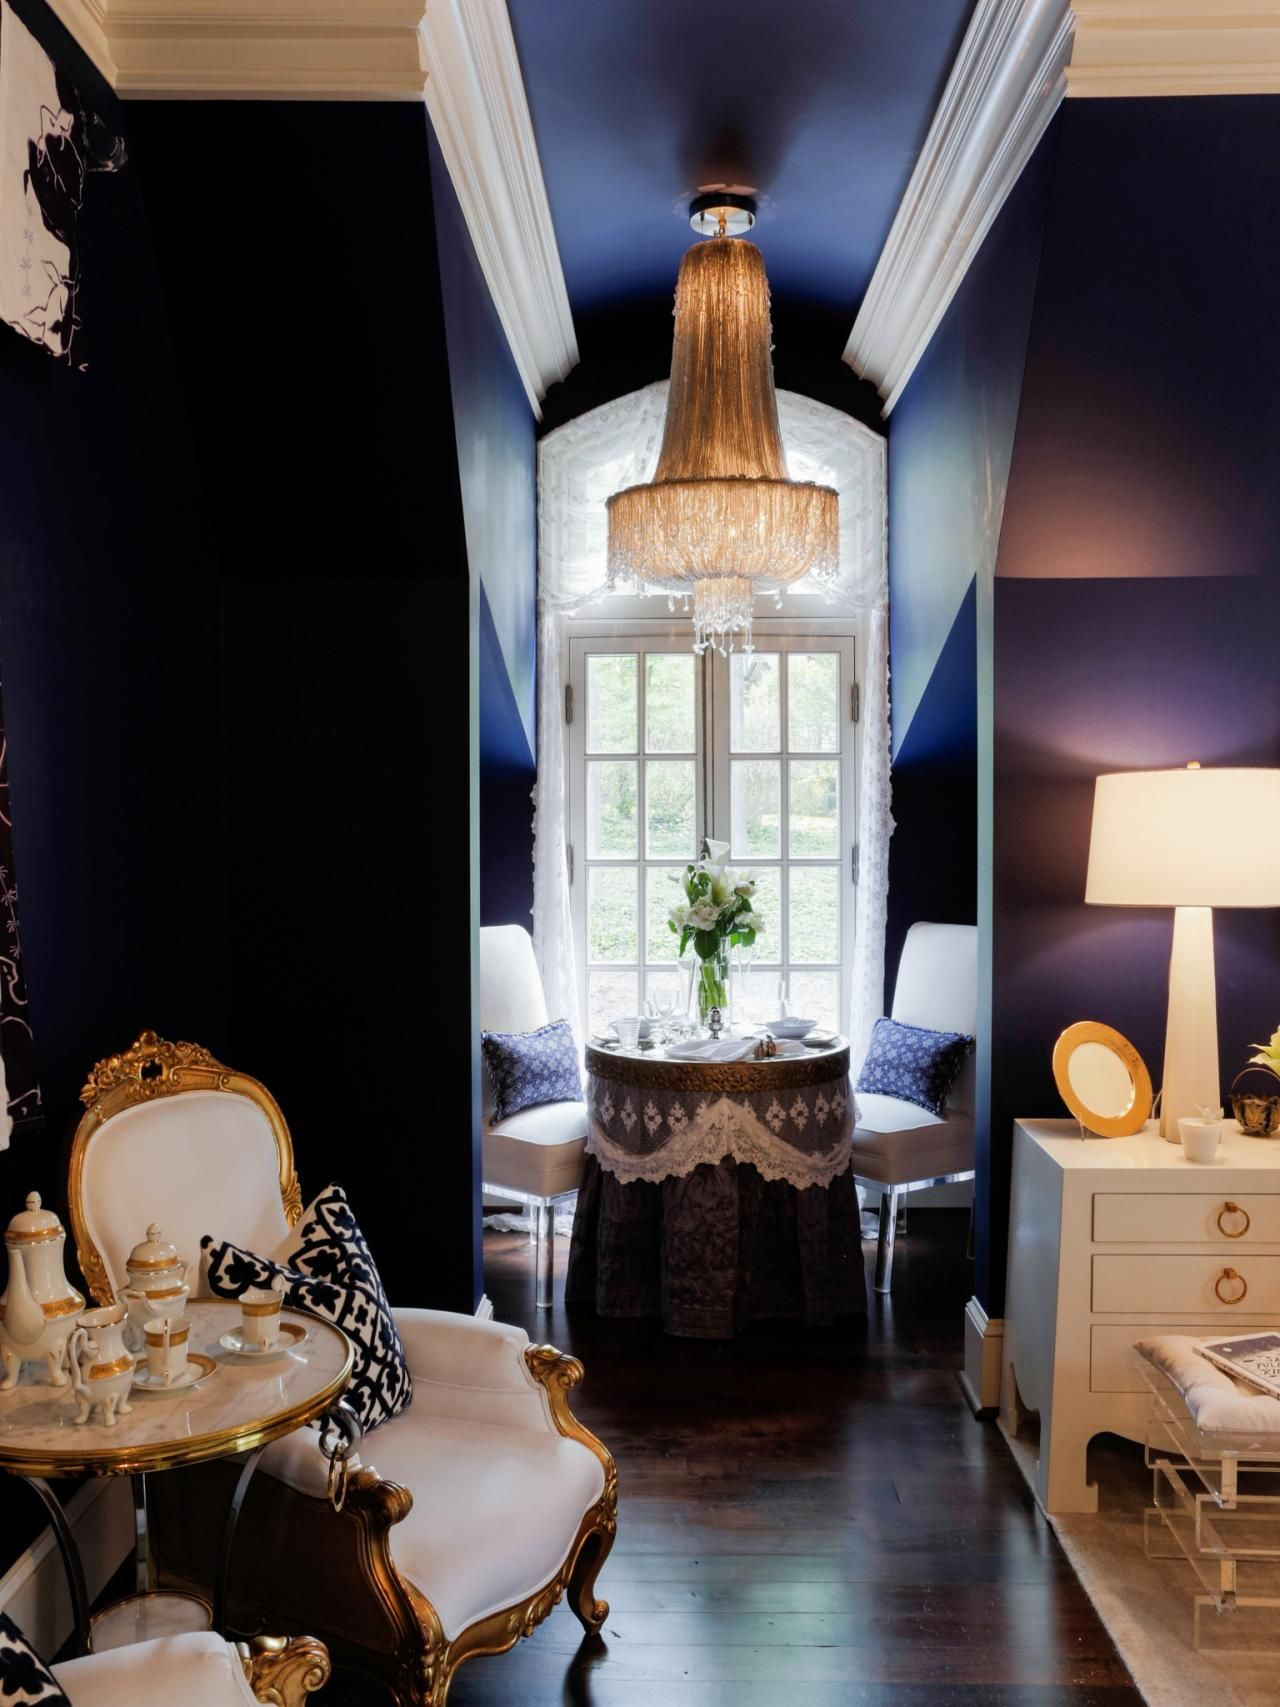 Luxury Showcase For Living Room Royal Art Deco: Dark Eggplant Walls Create An Opulent Backdrop In This